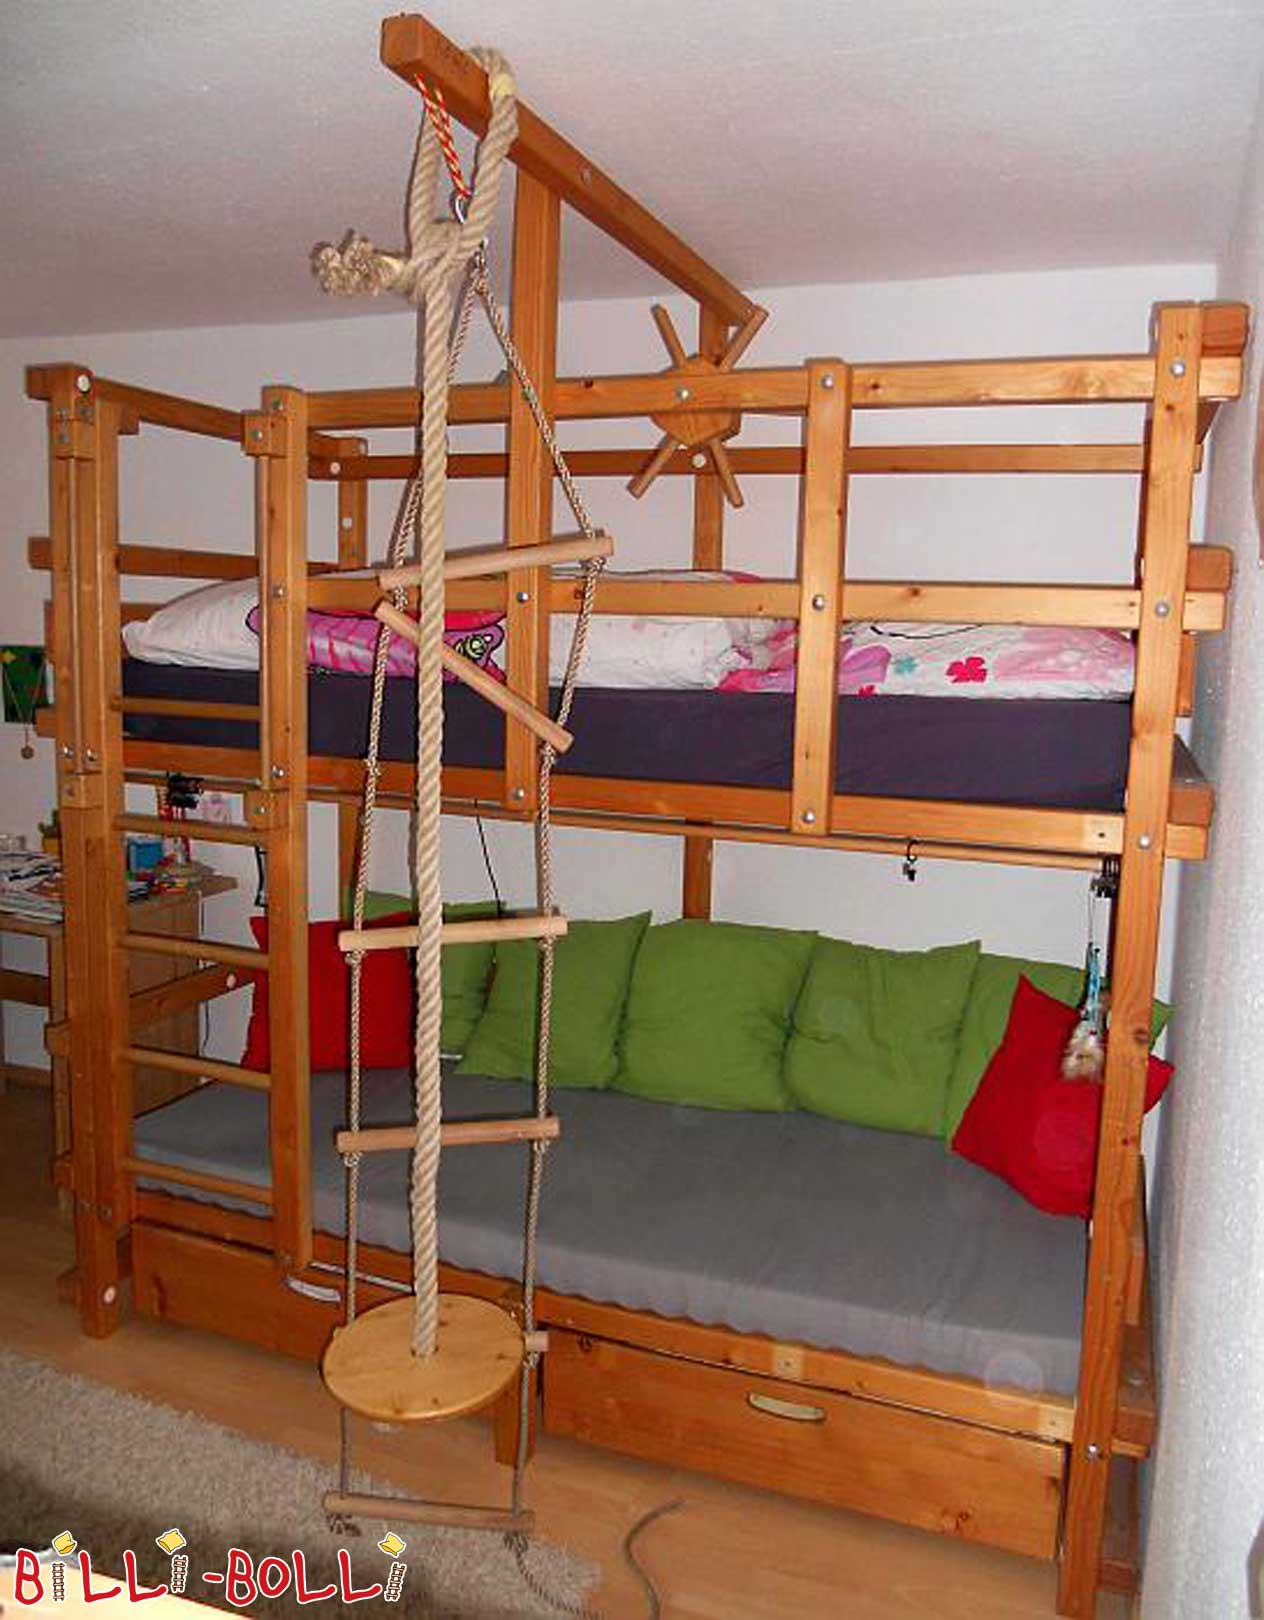 Secondhand page 90 billi bolli kids furniture for Second hand bunk beds